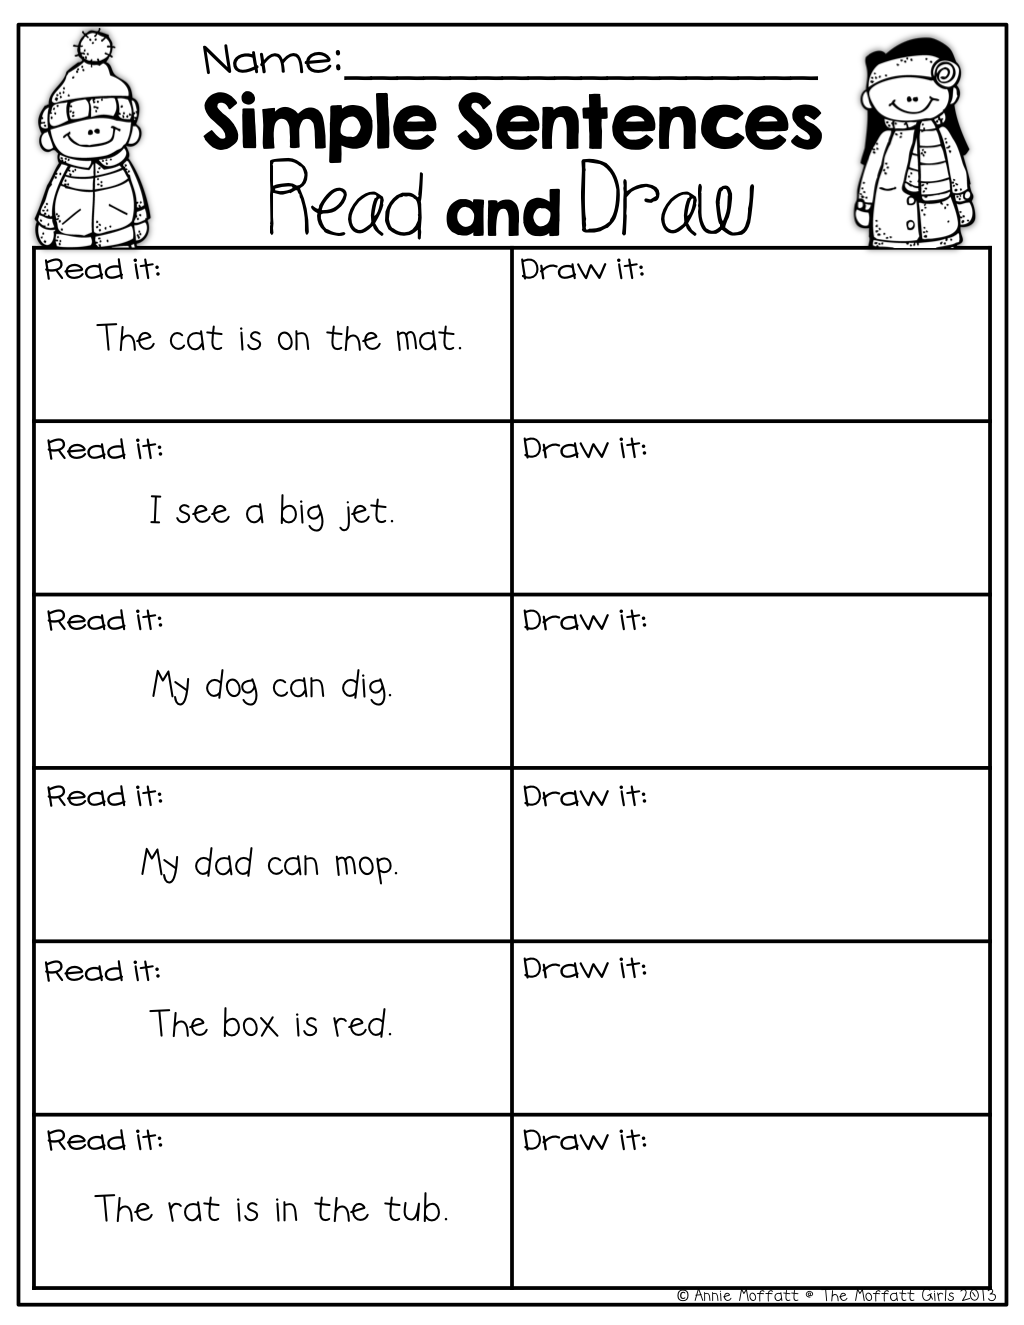 Worksheets Simple Sentences Worksheet simple sentences with sight words and cvc read draw perfect for beginning